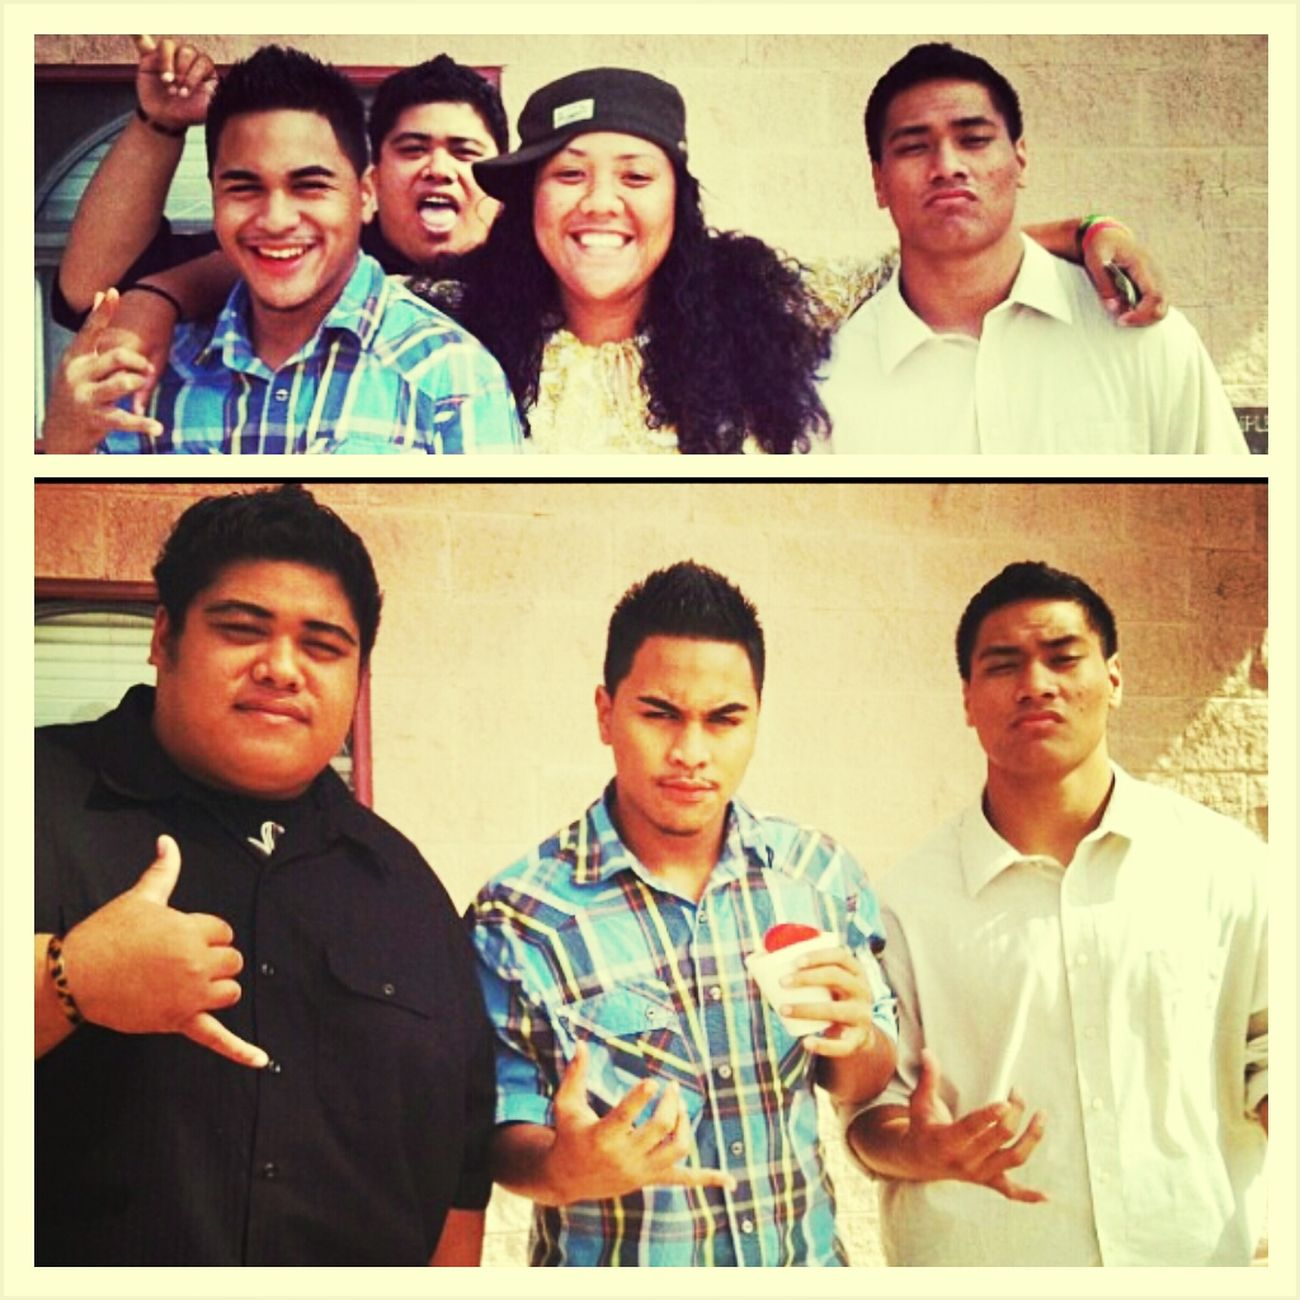 After Church wiff da Usos And Sis... Family #ChurchFlow MYFC